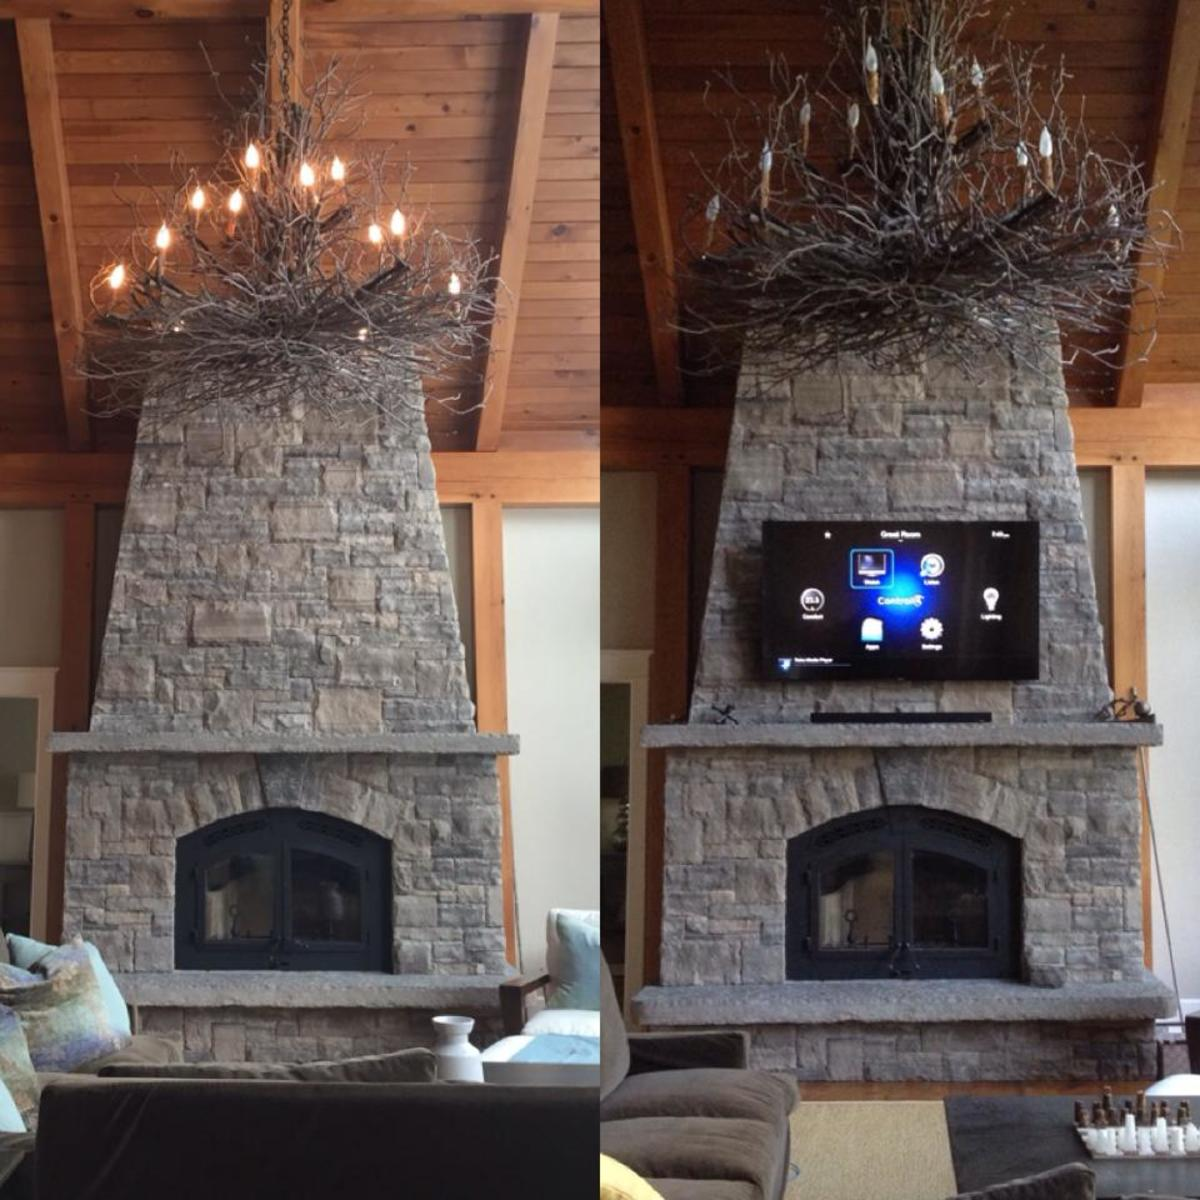 Stone Fireplace With No Previous Cabling Now Wired And Has A 70 Tv Mounted